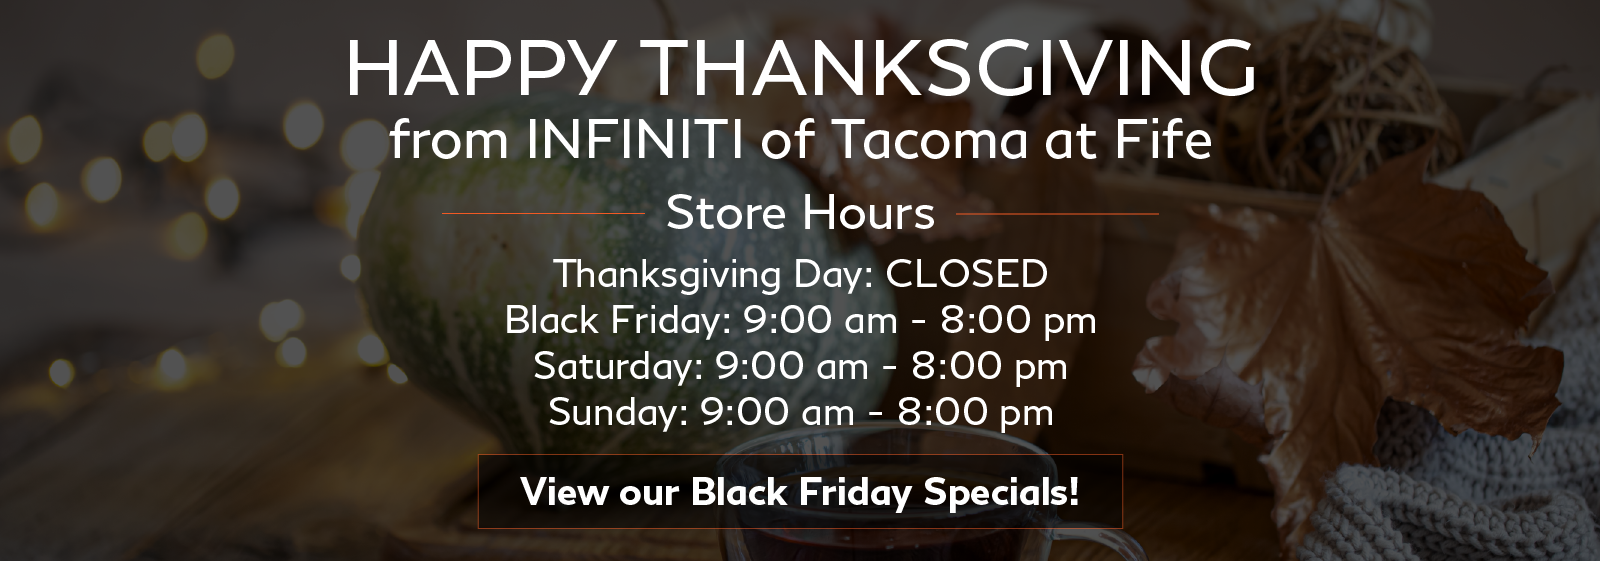 Happy Thanksgiving from INFINITI of Tacoma at Fife. Click to browse our Black Friday Specials!